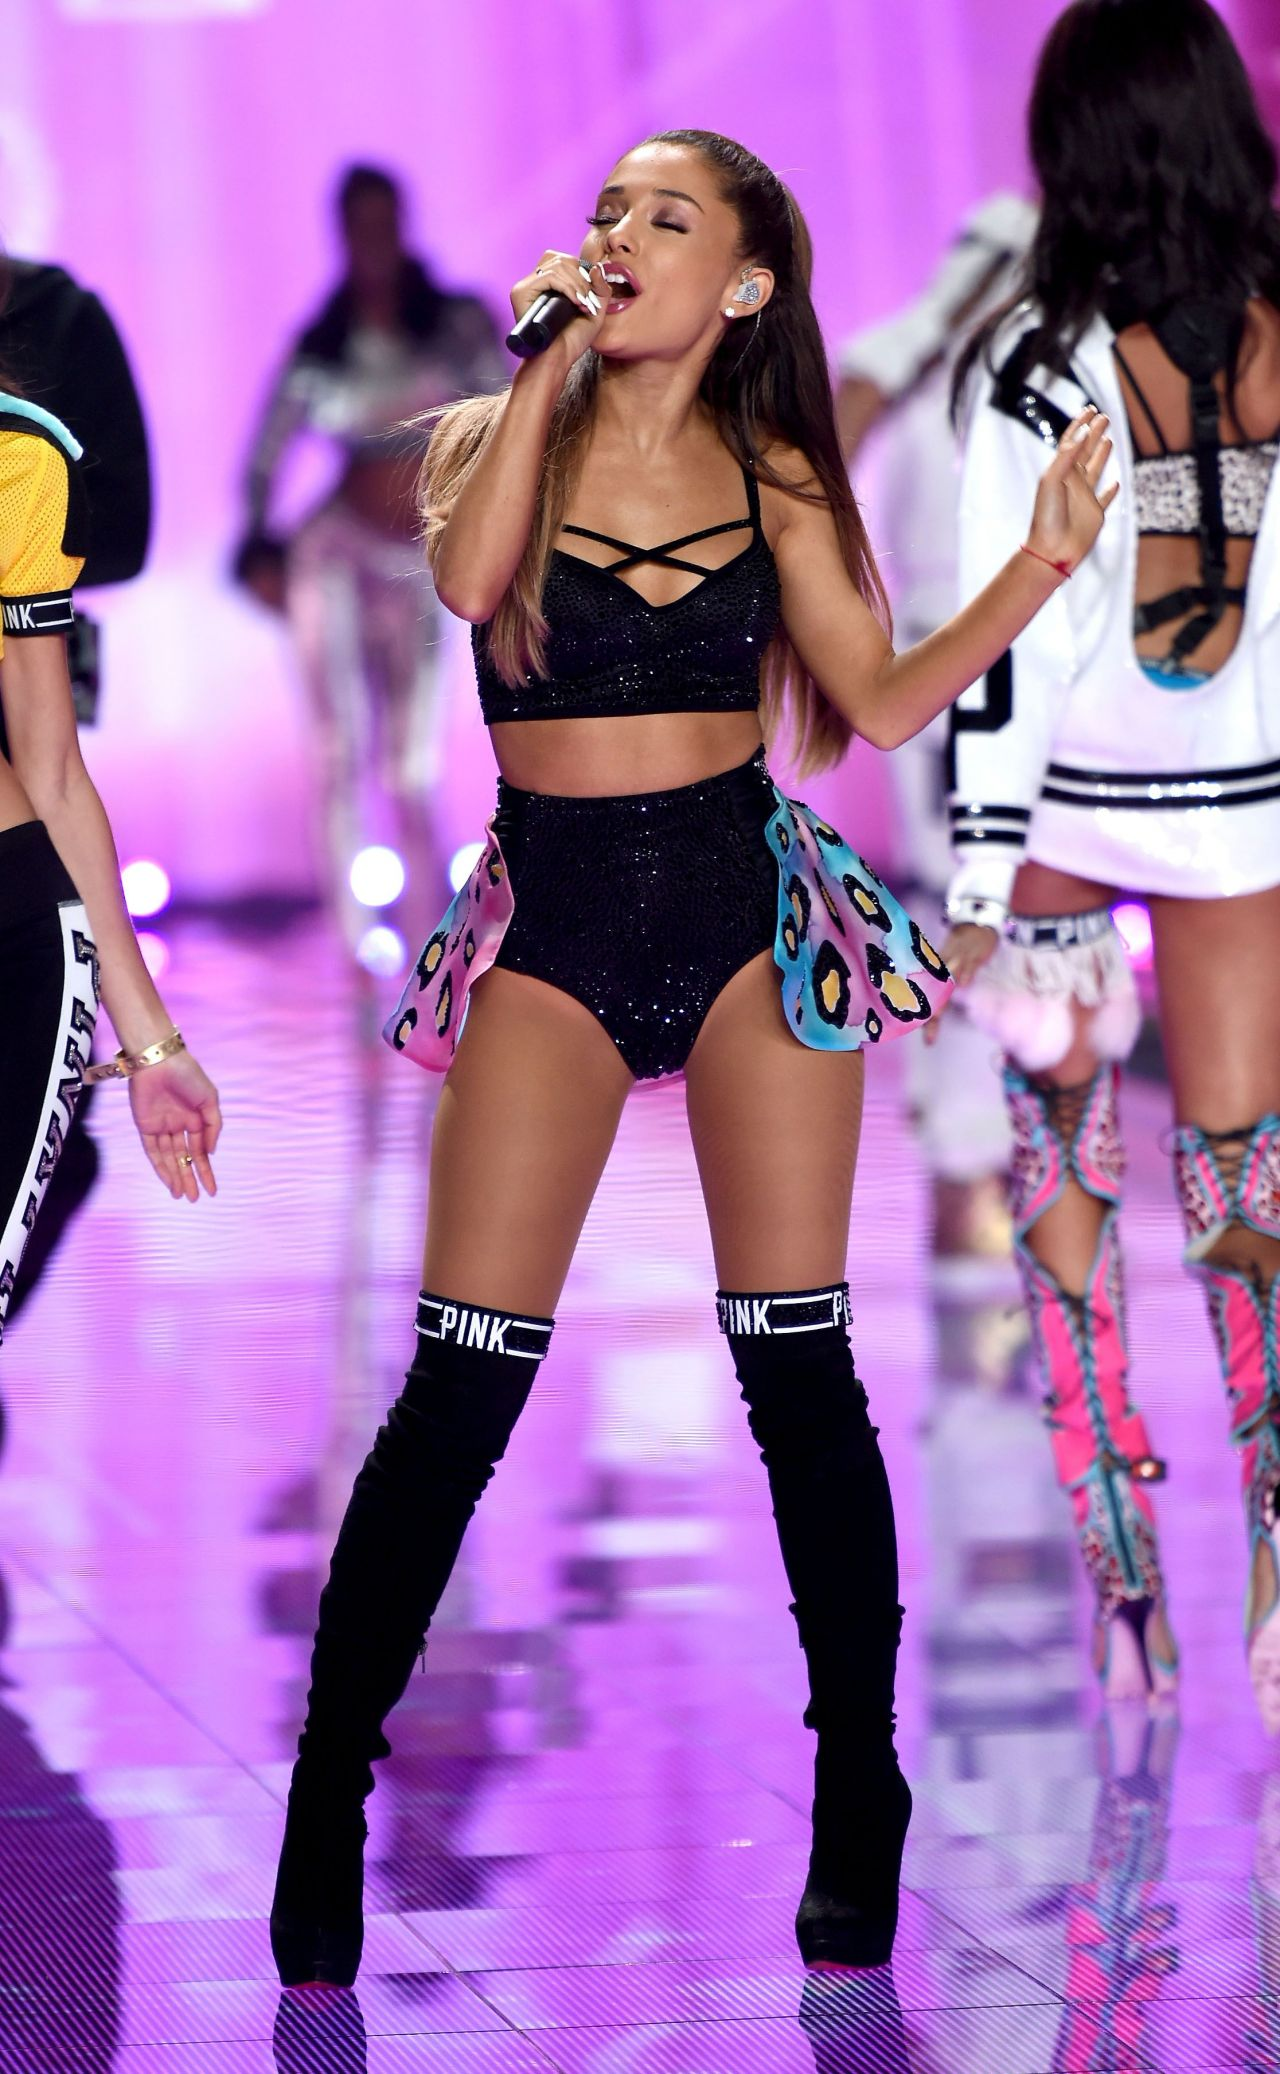 Ariana Grande Performs at Victoriau0026#39;s Secret Fashion Show in London - December 2014